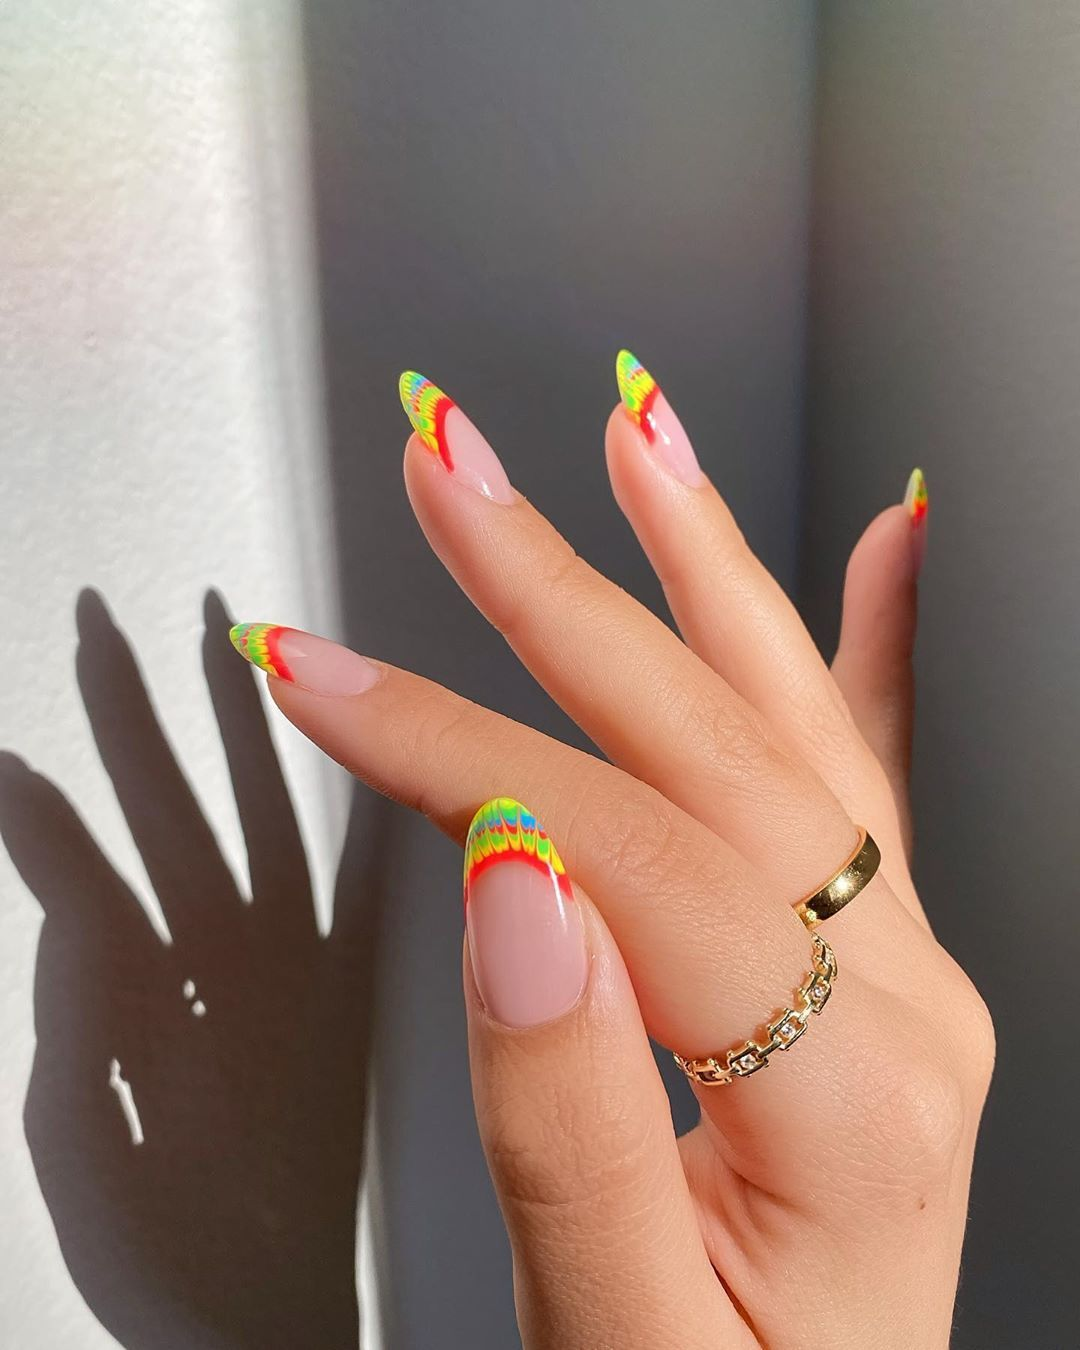 10 Gloriously Bright Nail Art Ideas To Inspire Your Pride Manicure In 2020 Tie Dye Nails Minimalist Nails Les Nails